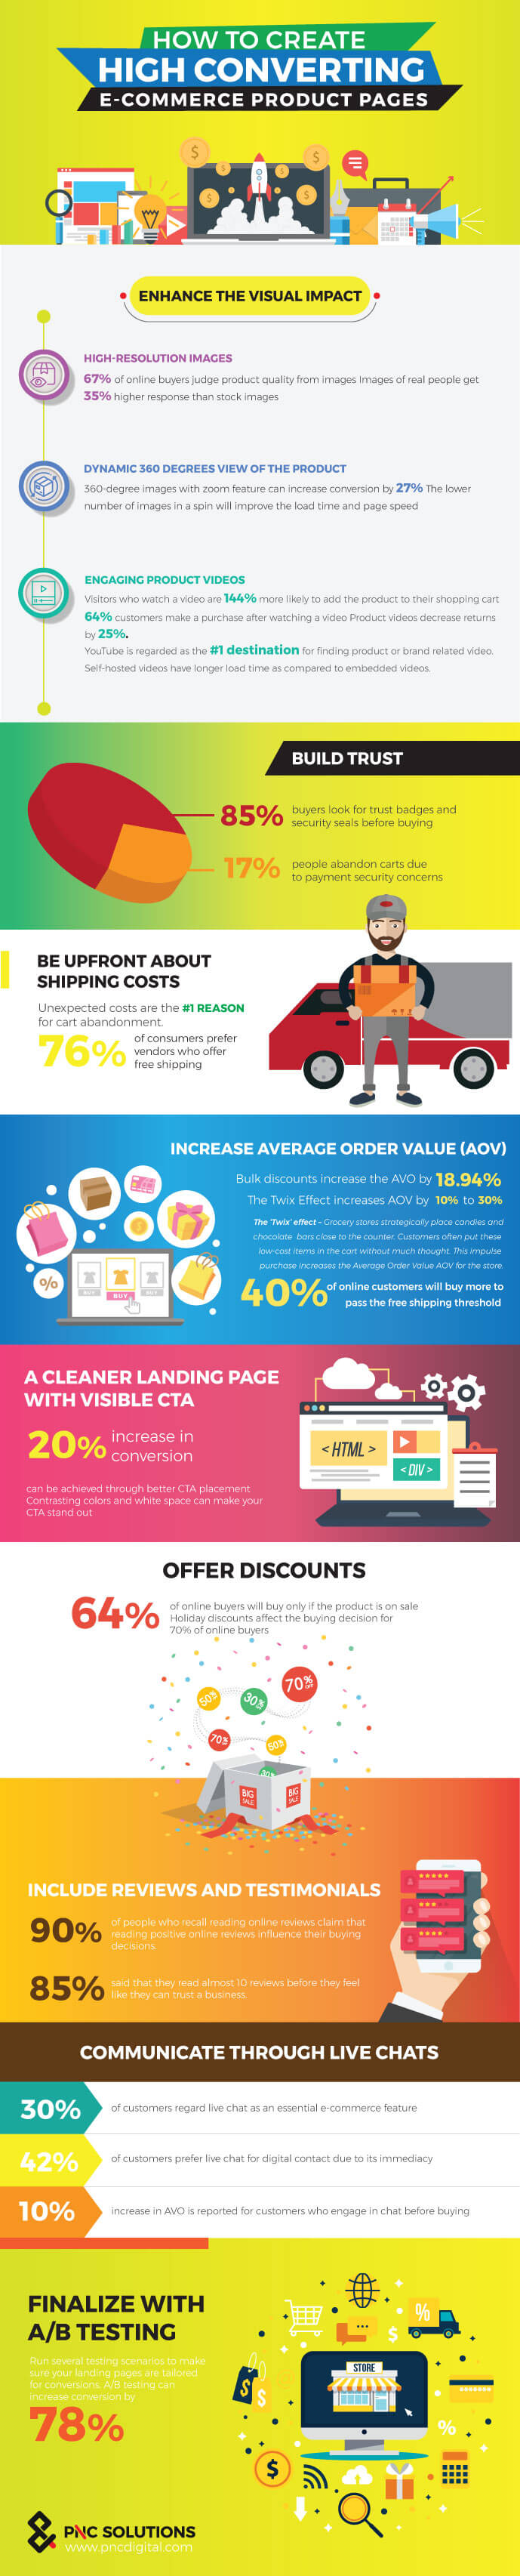 how to create high converting ecommerce product pages infographic